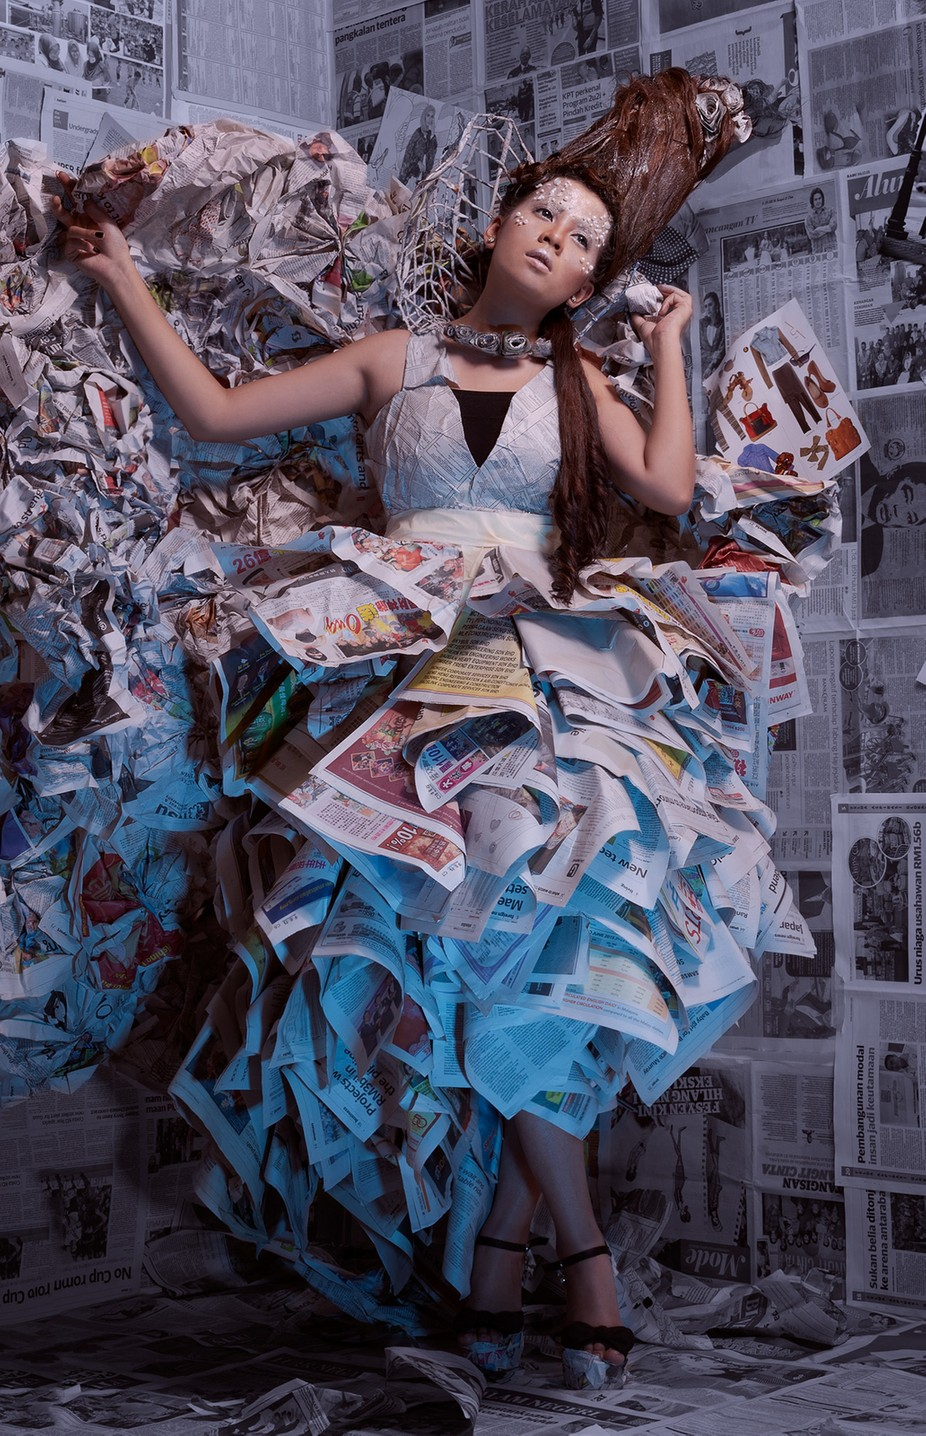 Media Dress by hassesodehamid - My Best New Shot Photo Contest